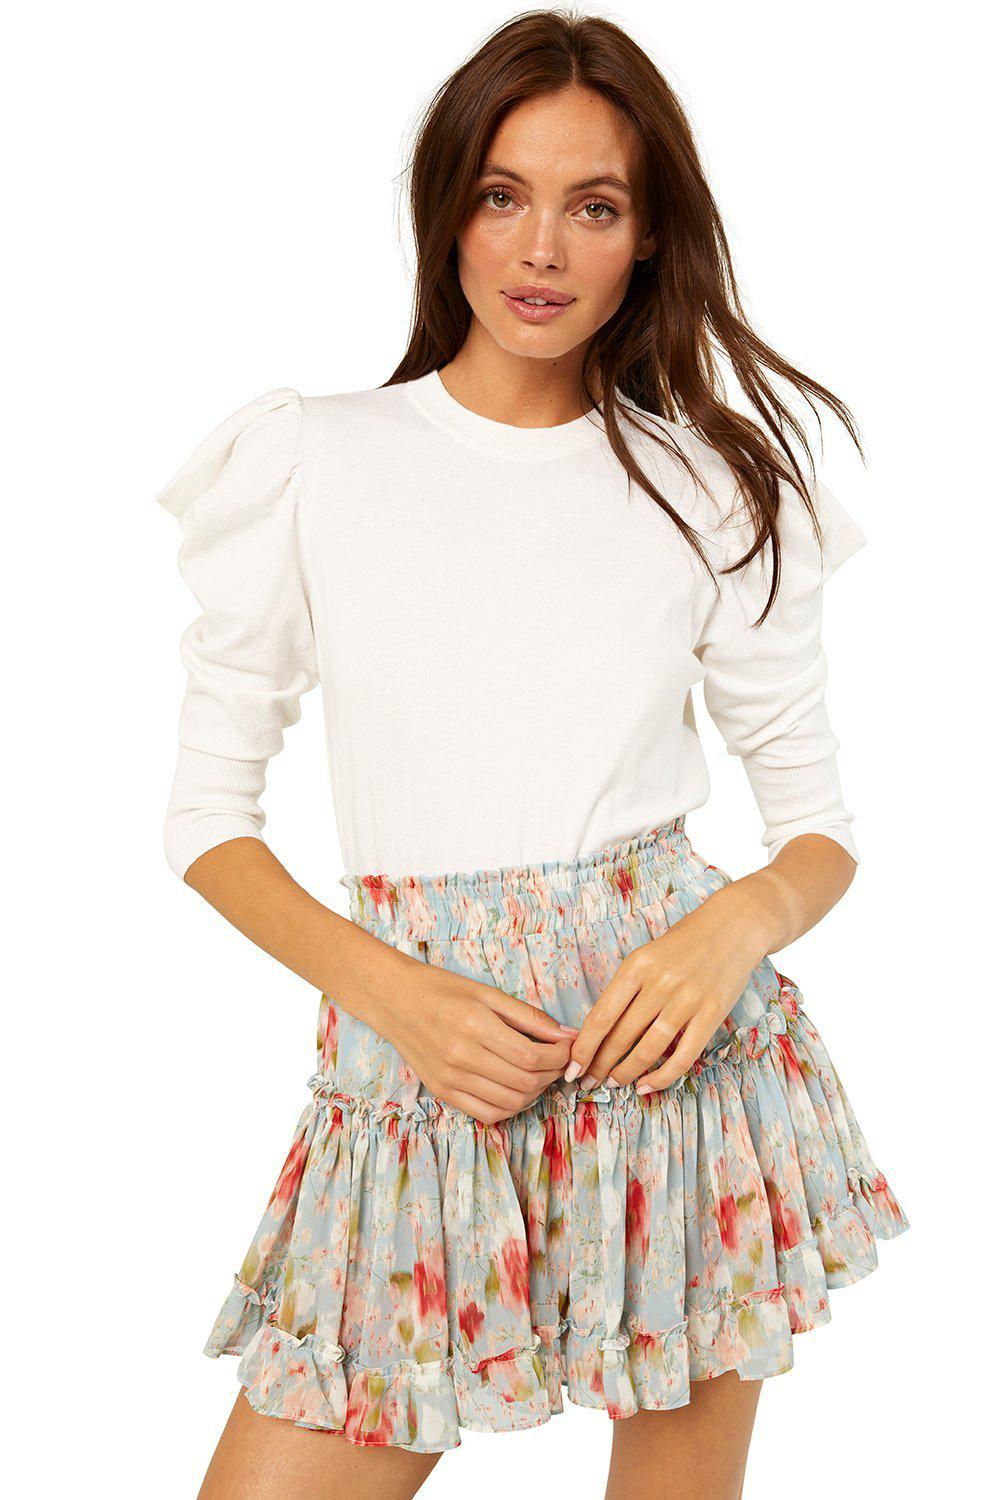 MISA MARION MINI SKIRT IN DAYDREAM FLORAL